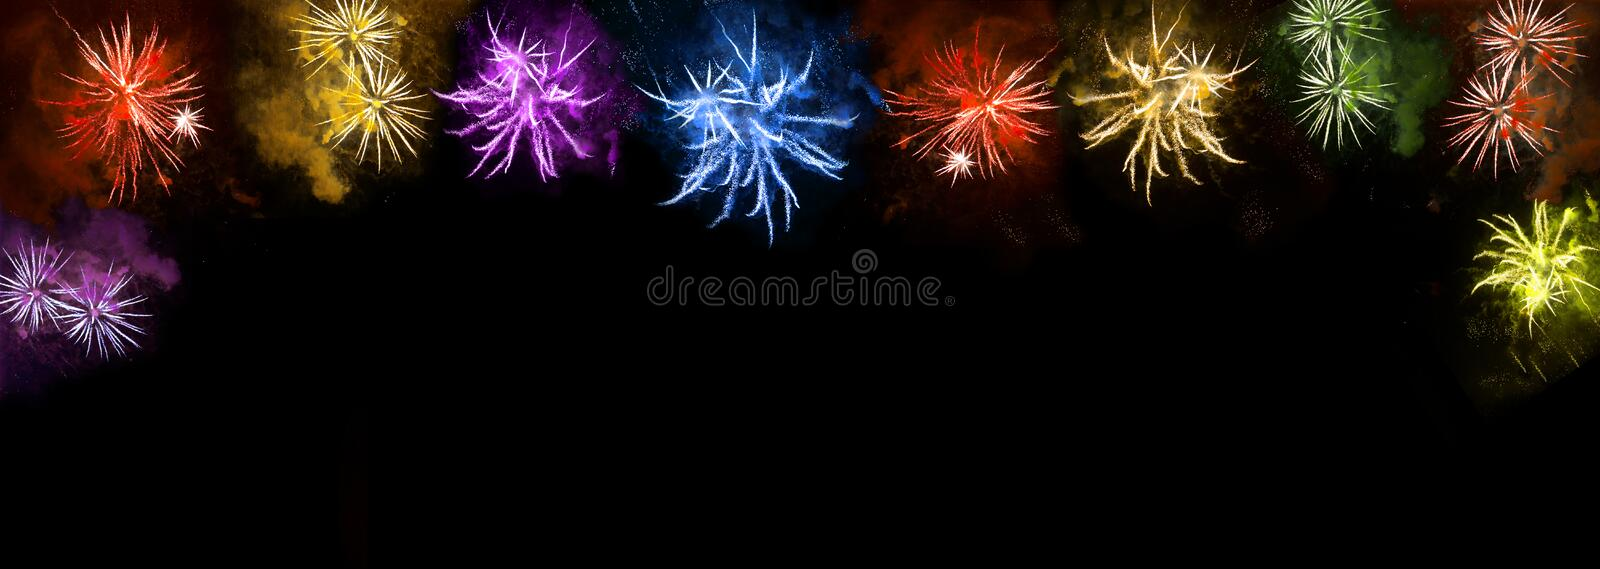 Colorful fireworks on black background. Holidays banner royalty free stock photo